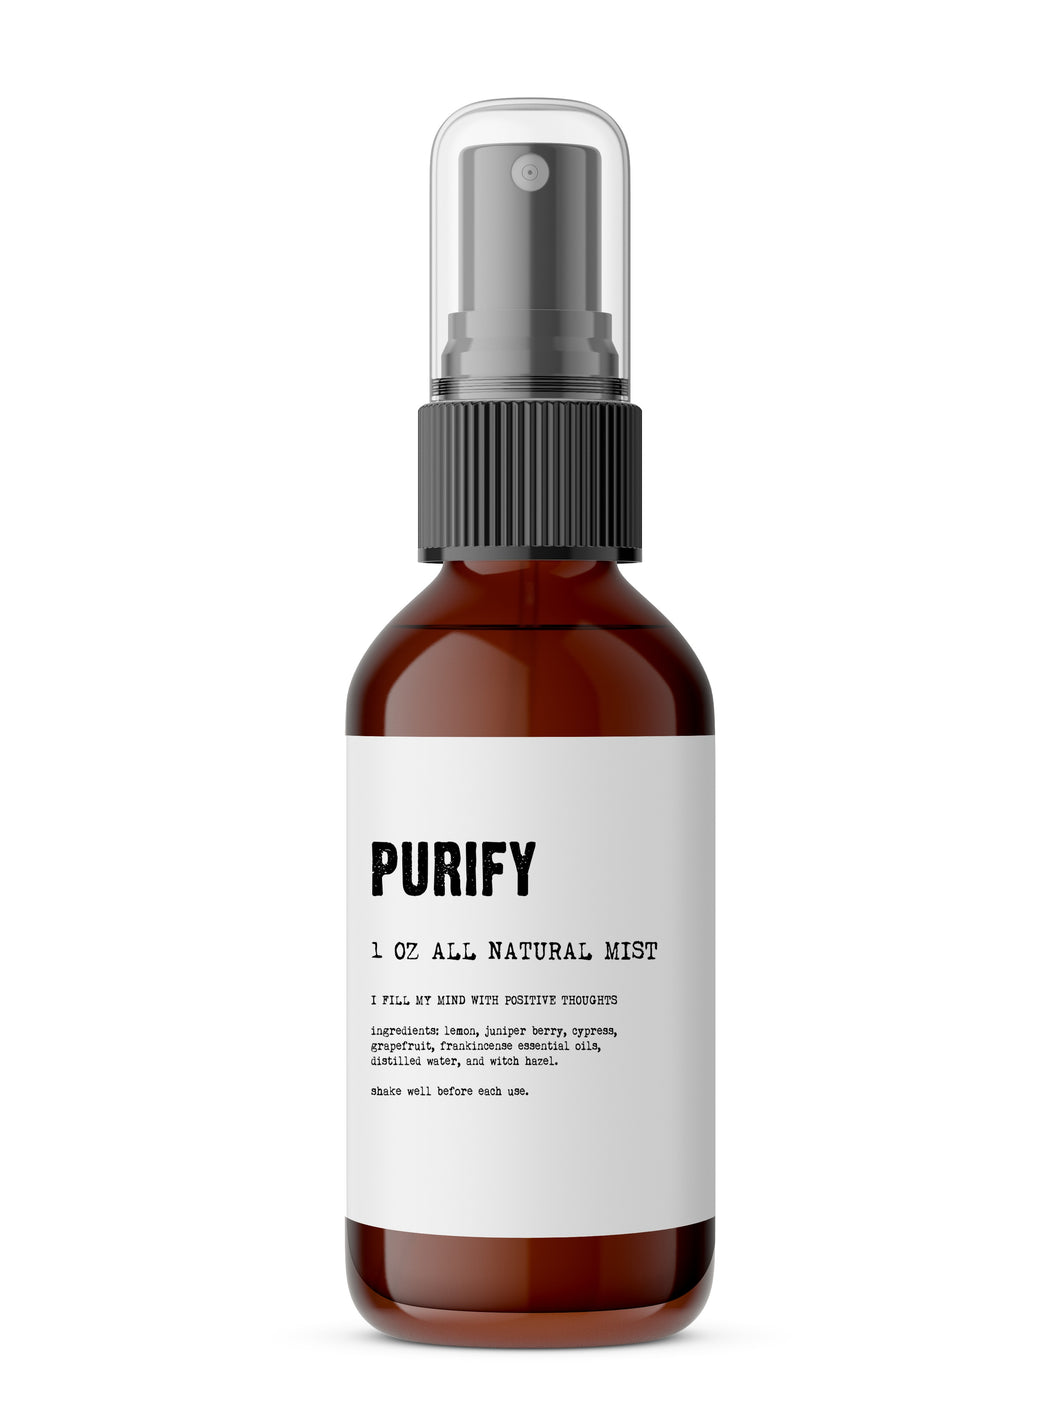 Purify - Meditation/Body Mist - Made with All Natural Ingredients